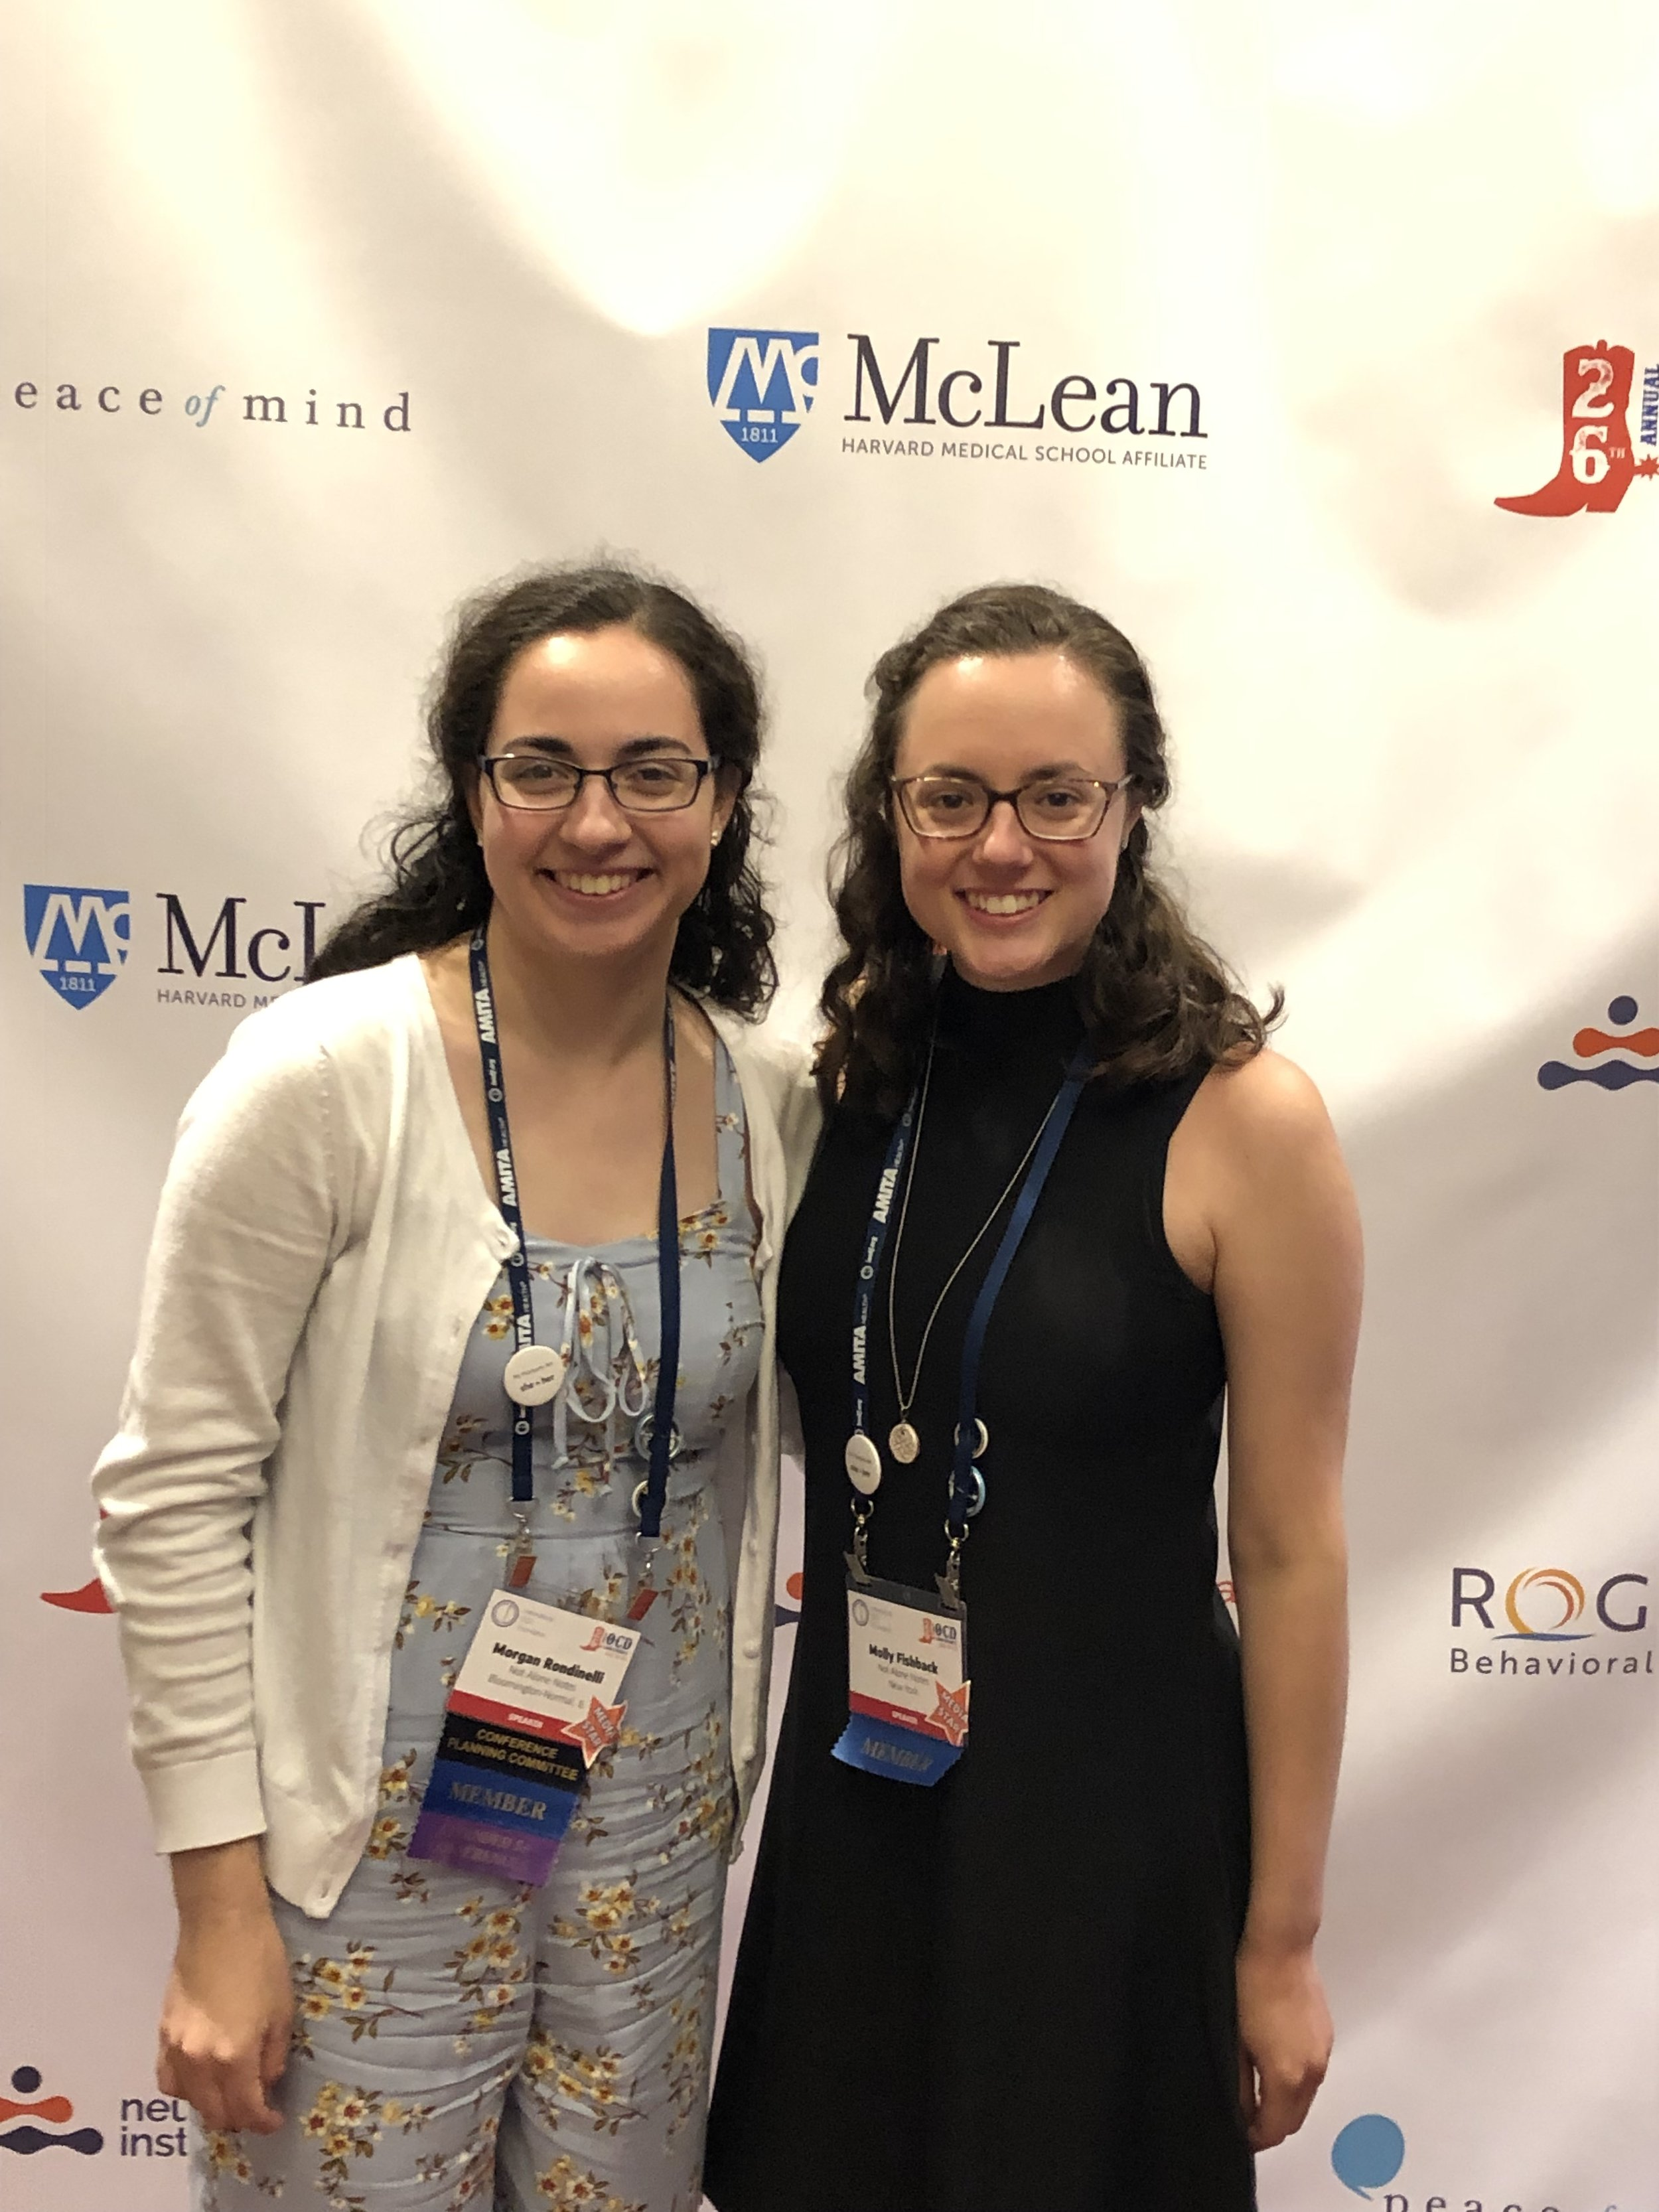 Morgan and Molly at OCDcon 2019